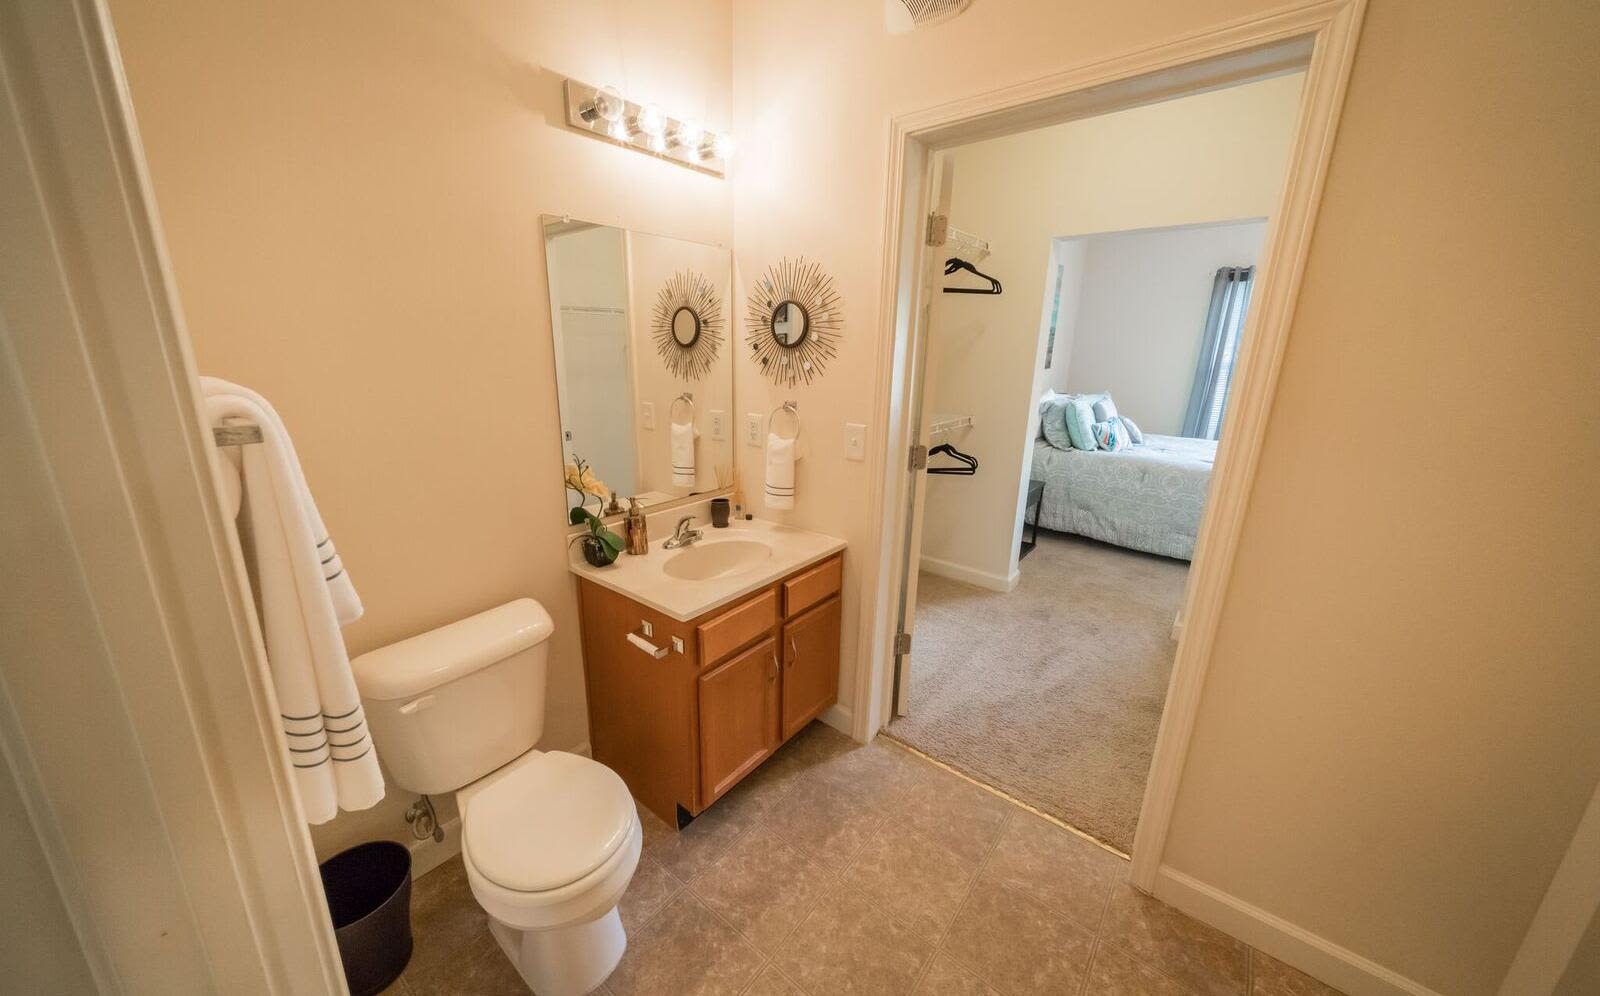 Enjoy a beautiful bathroom at Pavilion at Plantation Way in Macon, Georgia